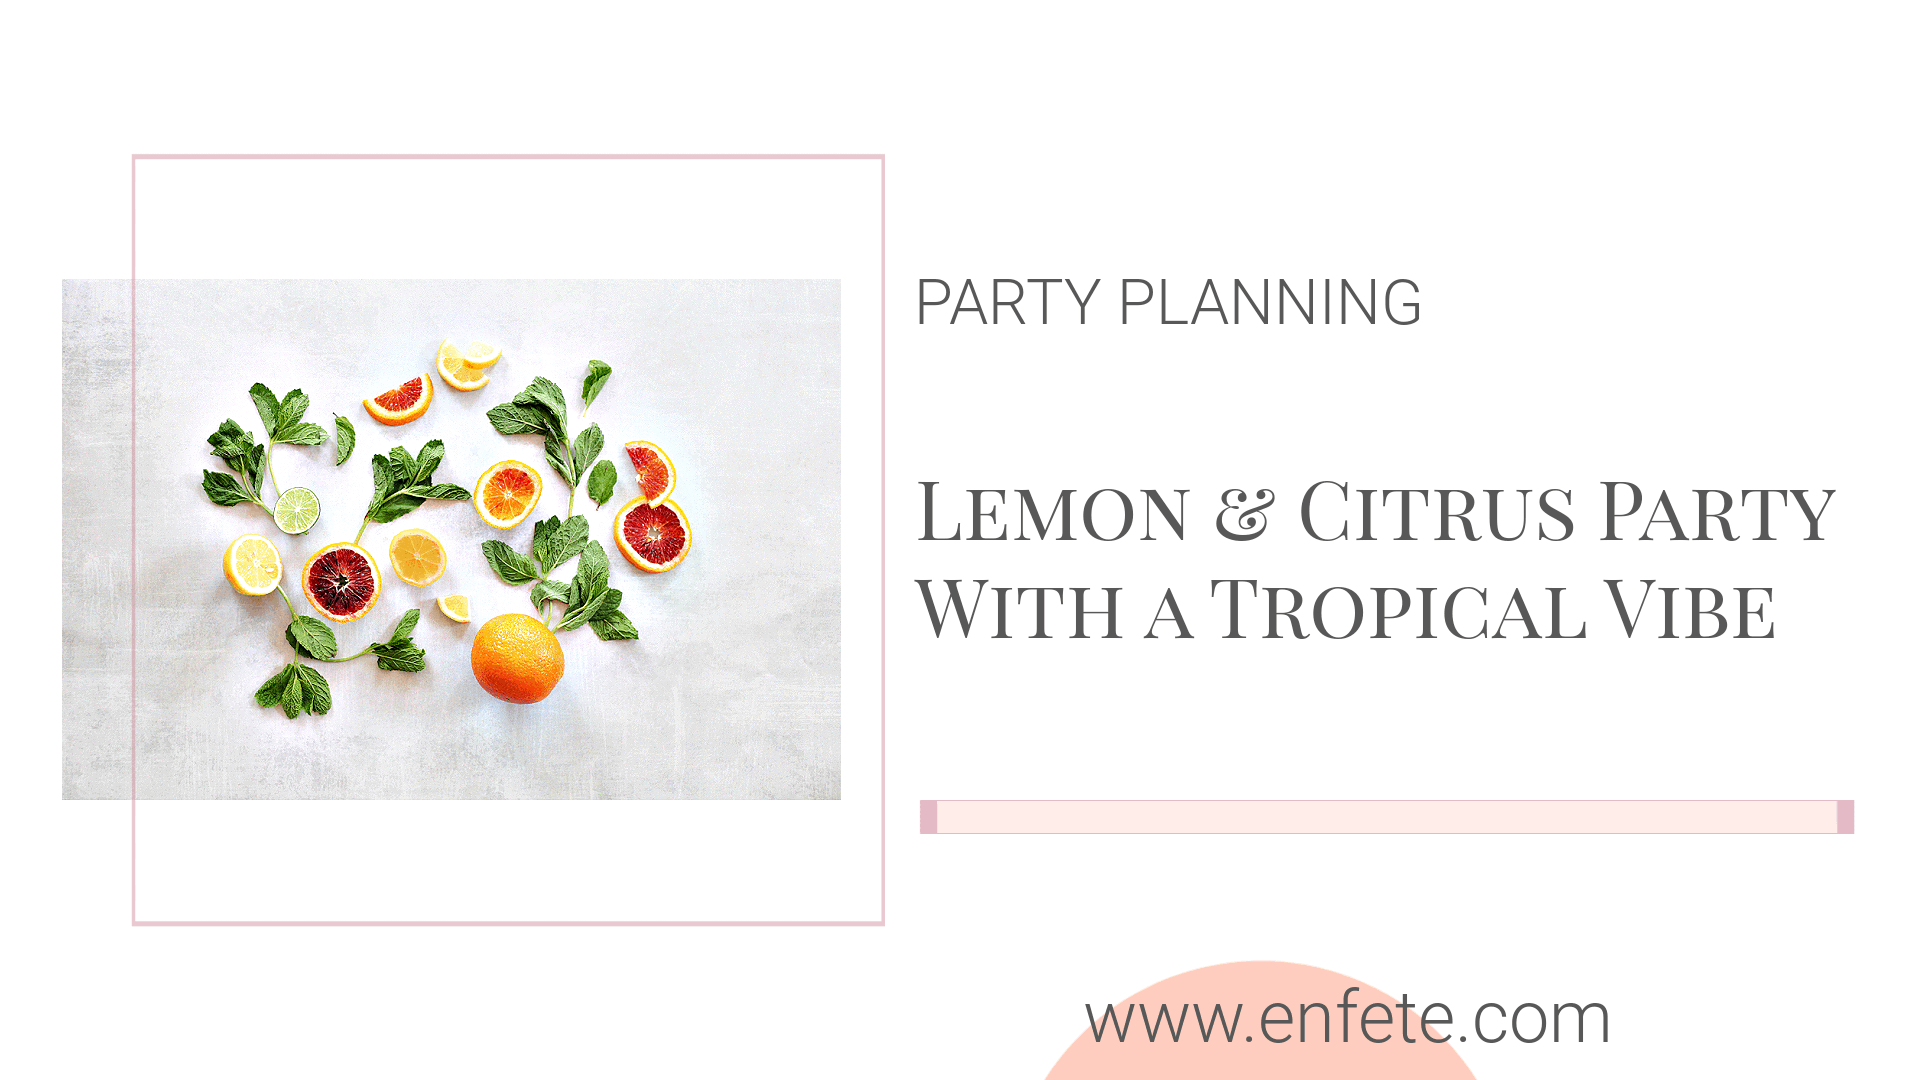 Lemon and Citrus Party with a Tropical Vibe blog post for a themed bridal shower or wedding